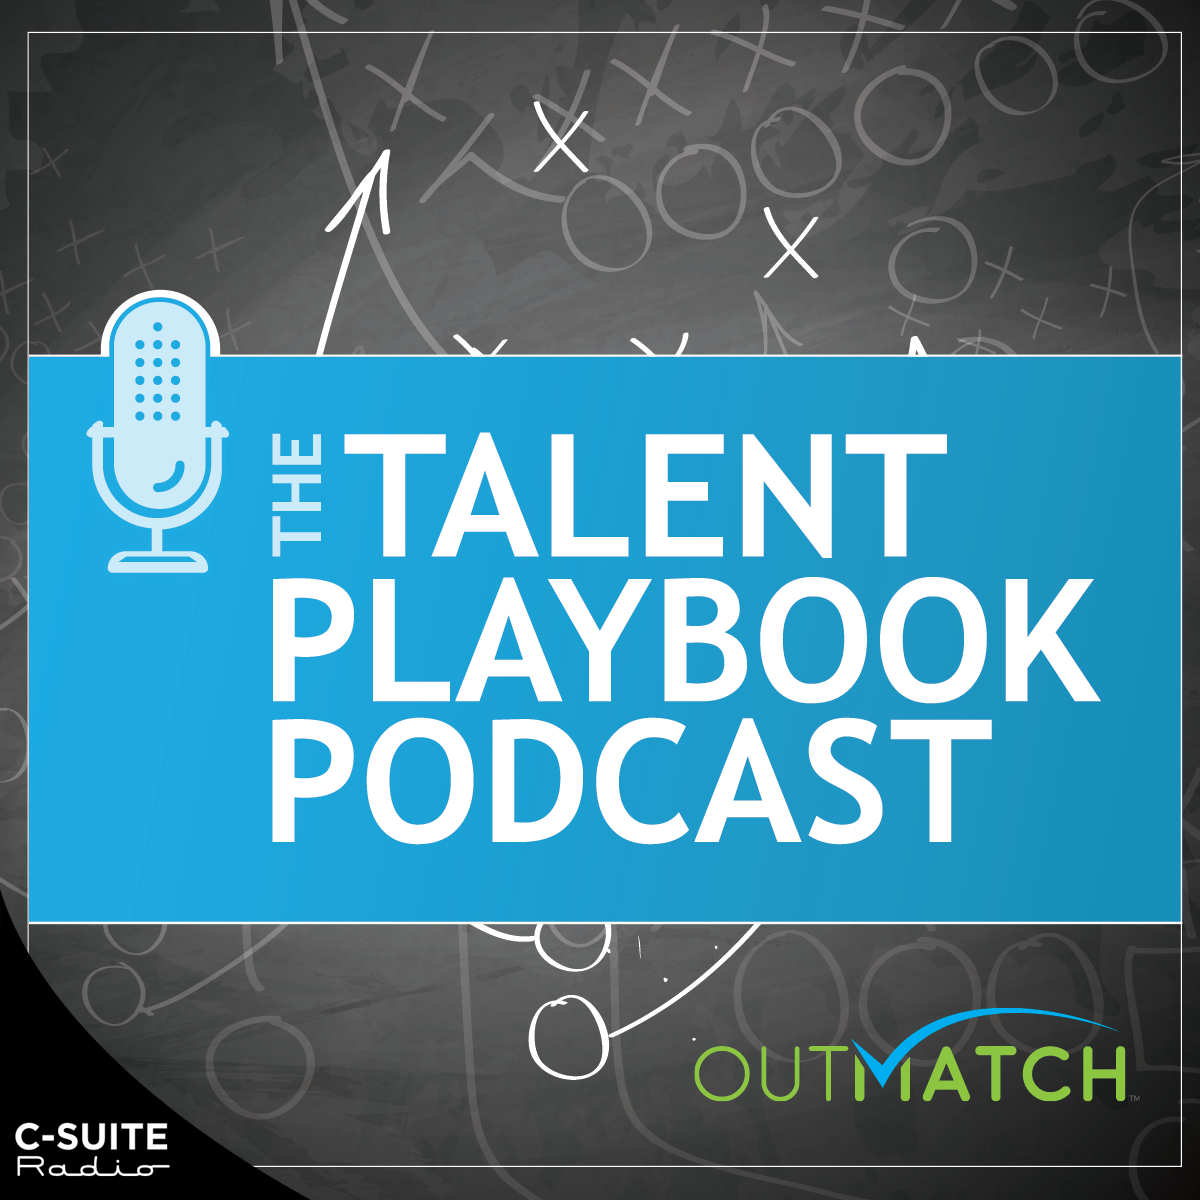 The Talent Playbook Podcast